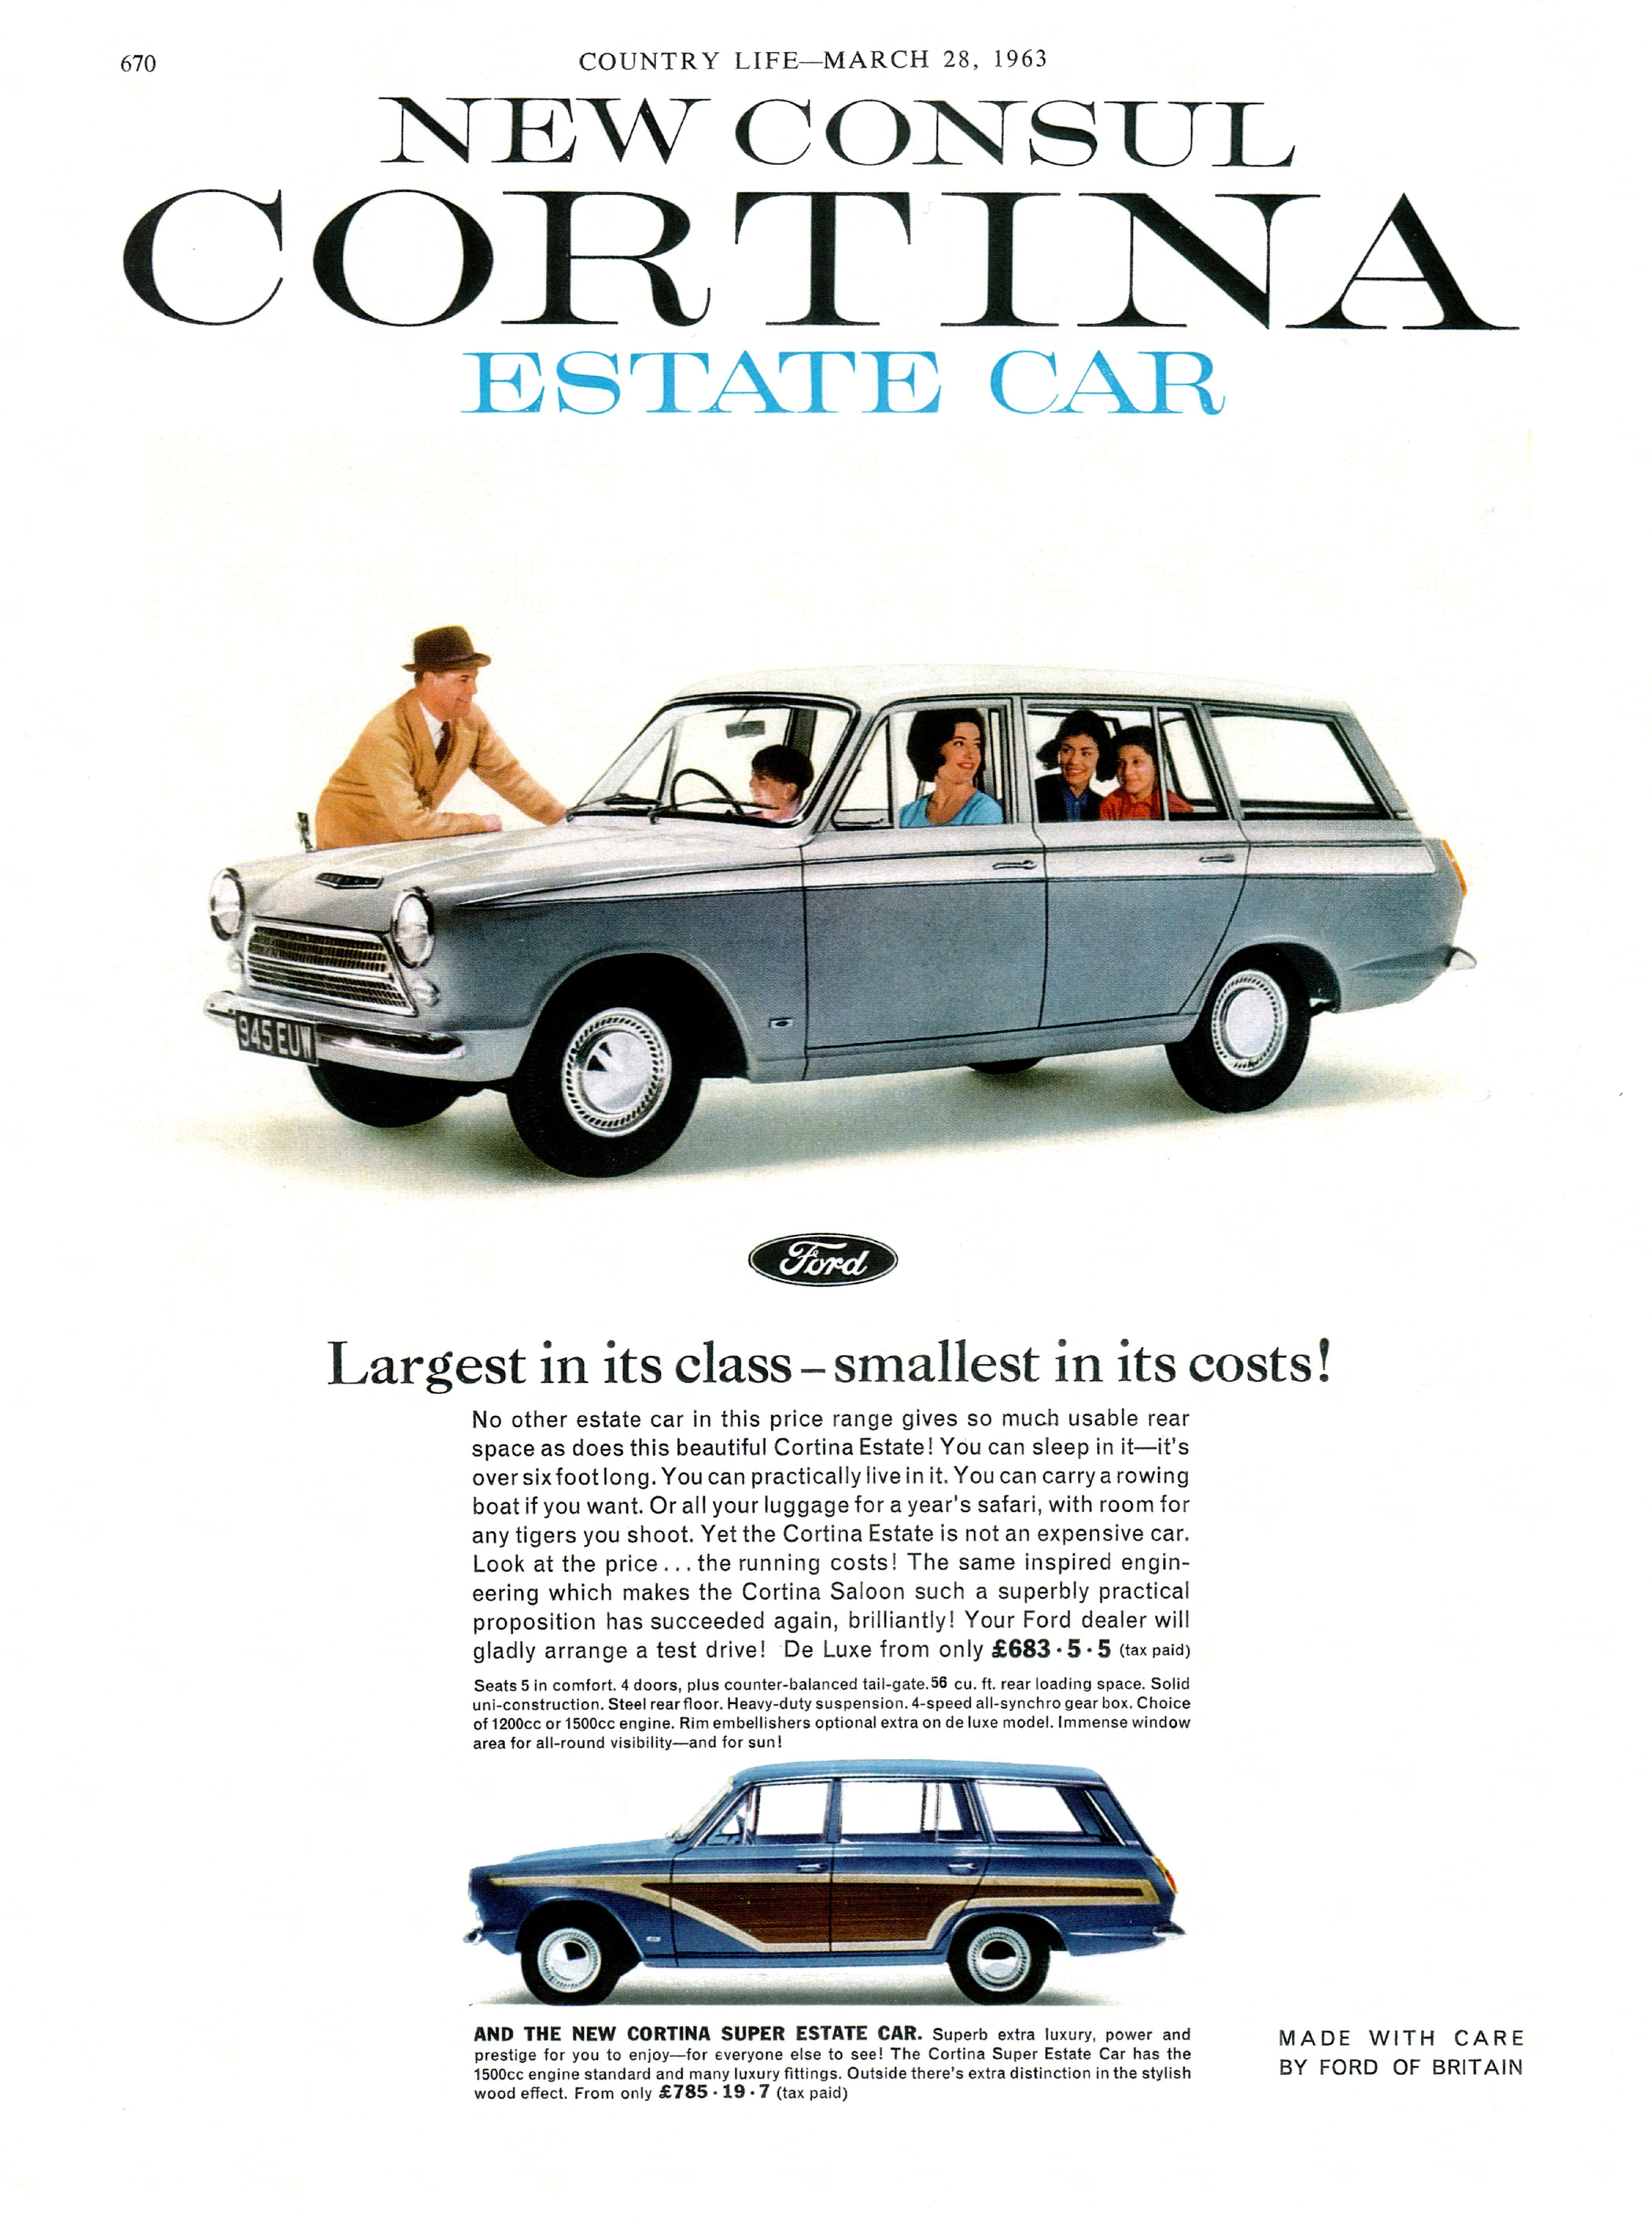 The 1963 Ford Cortina Estate car with the fake wooden panels were particularly unsuccessful and withdrawn quite quickly.